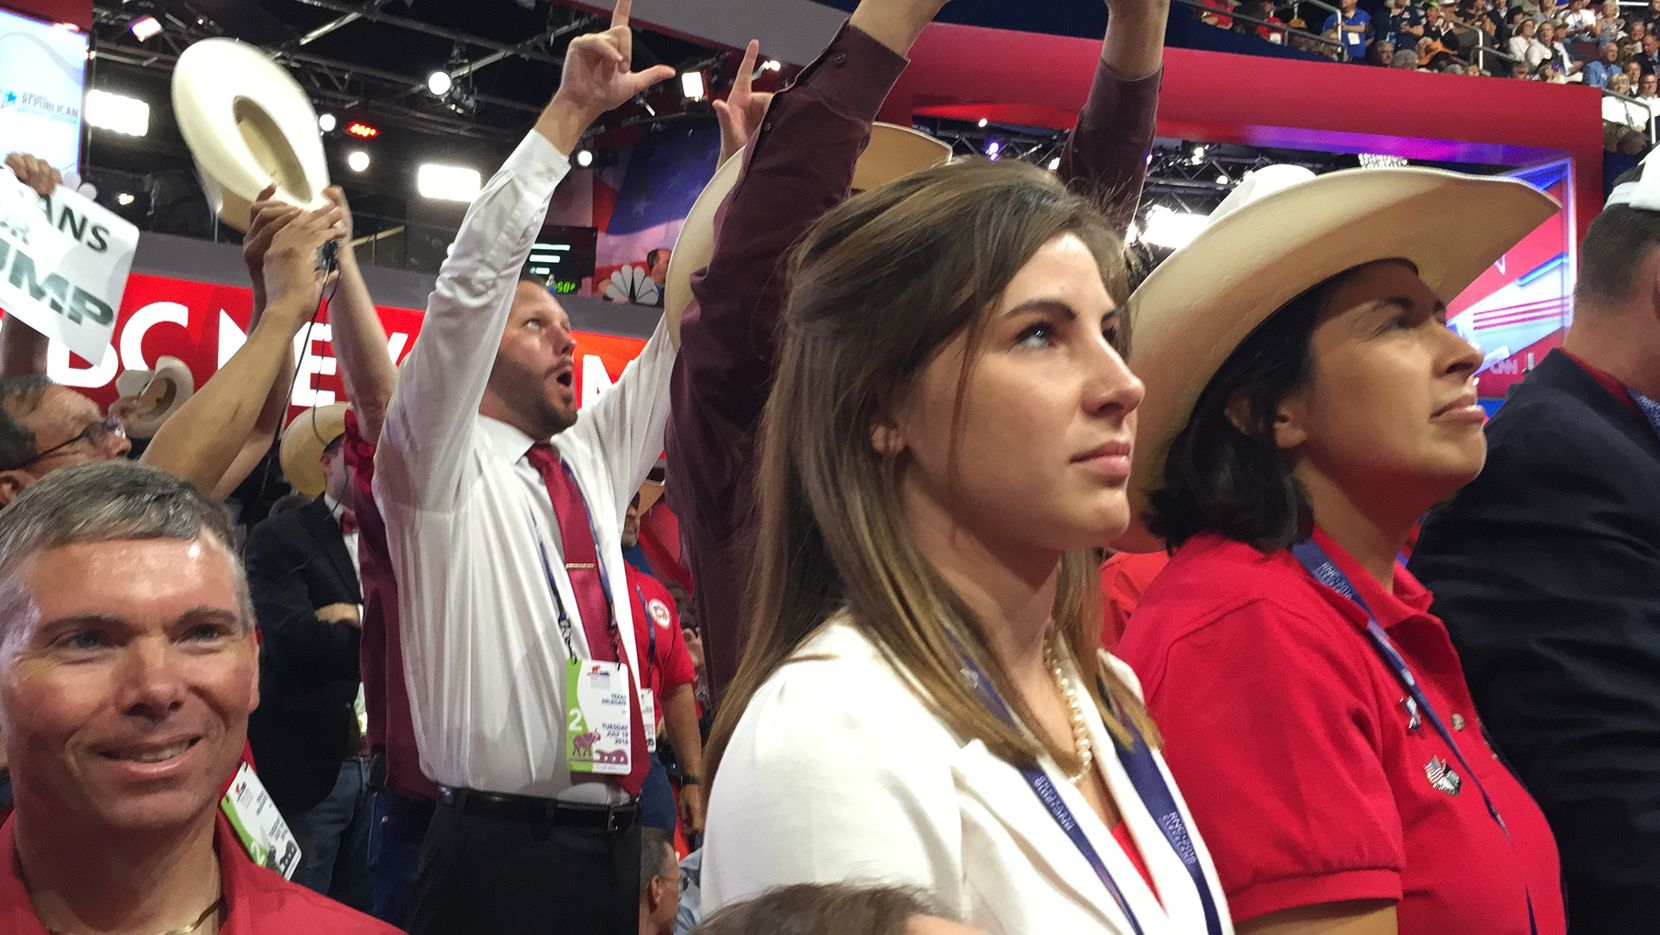 Rachel Chupik (left) and Laura Koerner watched as Texas Republicans cast votes for Donald Trump during the Republican National Convention last week. The women were both delegates for Sen. Ted Cruz.